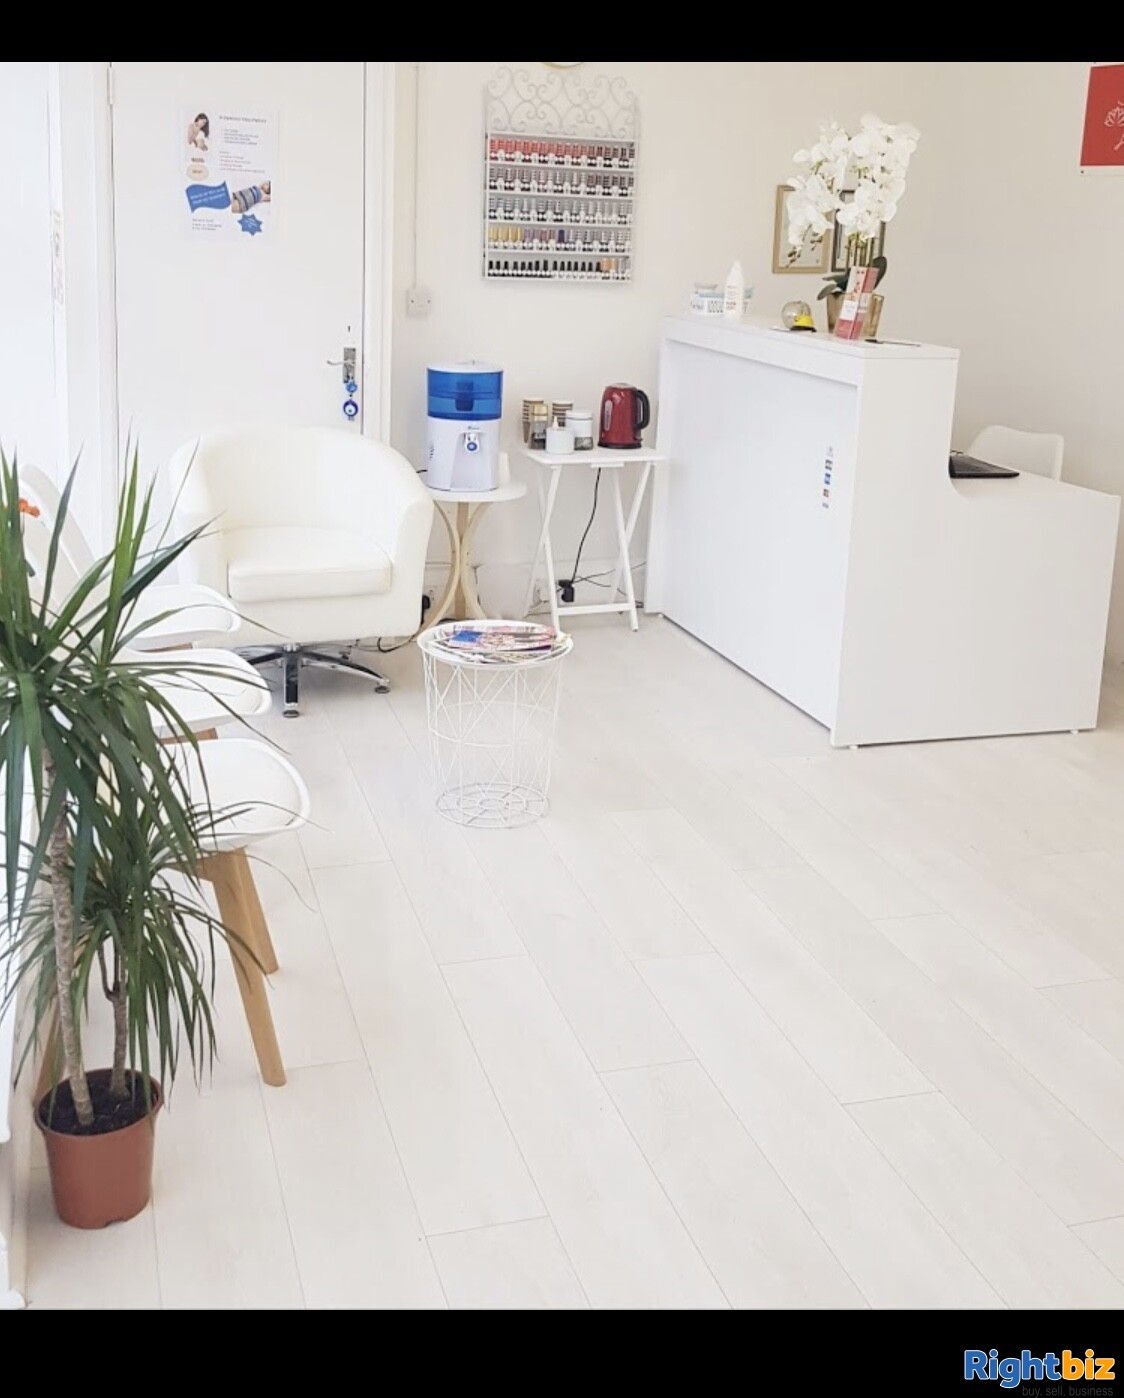 Established Nails, Tanning and Beauty salon for sale in Worthing near Brighton - Image 2